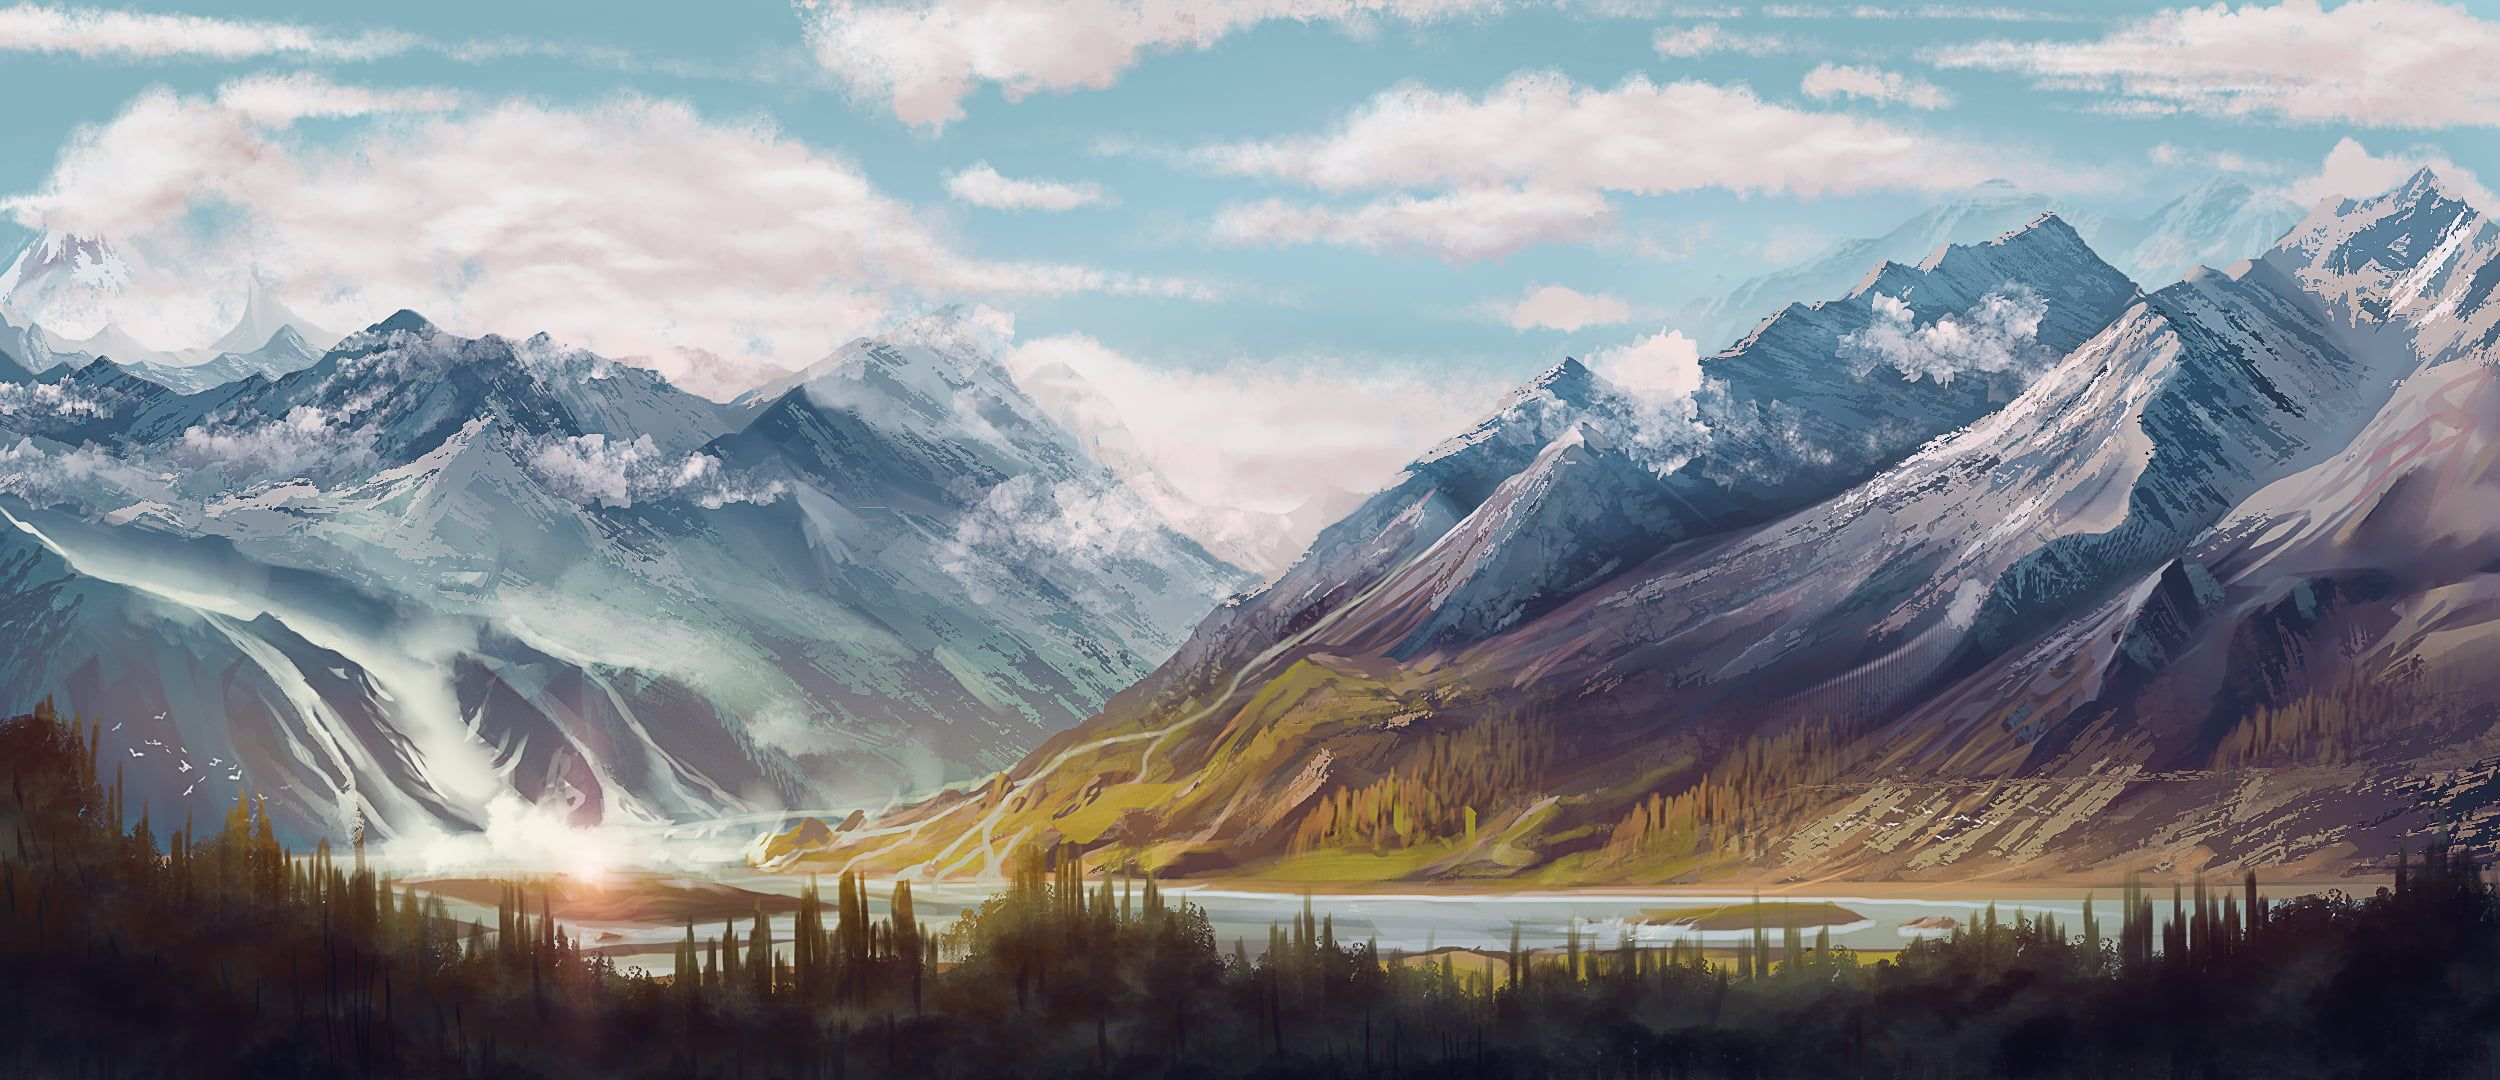 Landscape Painting Of Mountain Digital Art Mountains Forest Clouds River Sky Artwork 1080p Wallpaper Landscape Paintings Mountain Paintings Landscape Fantasy art river forest mountains sky